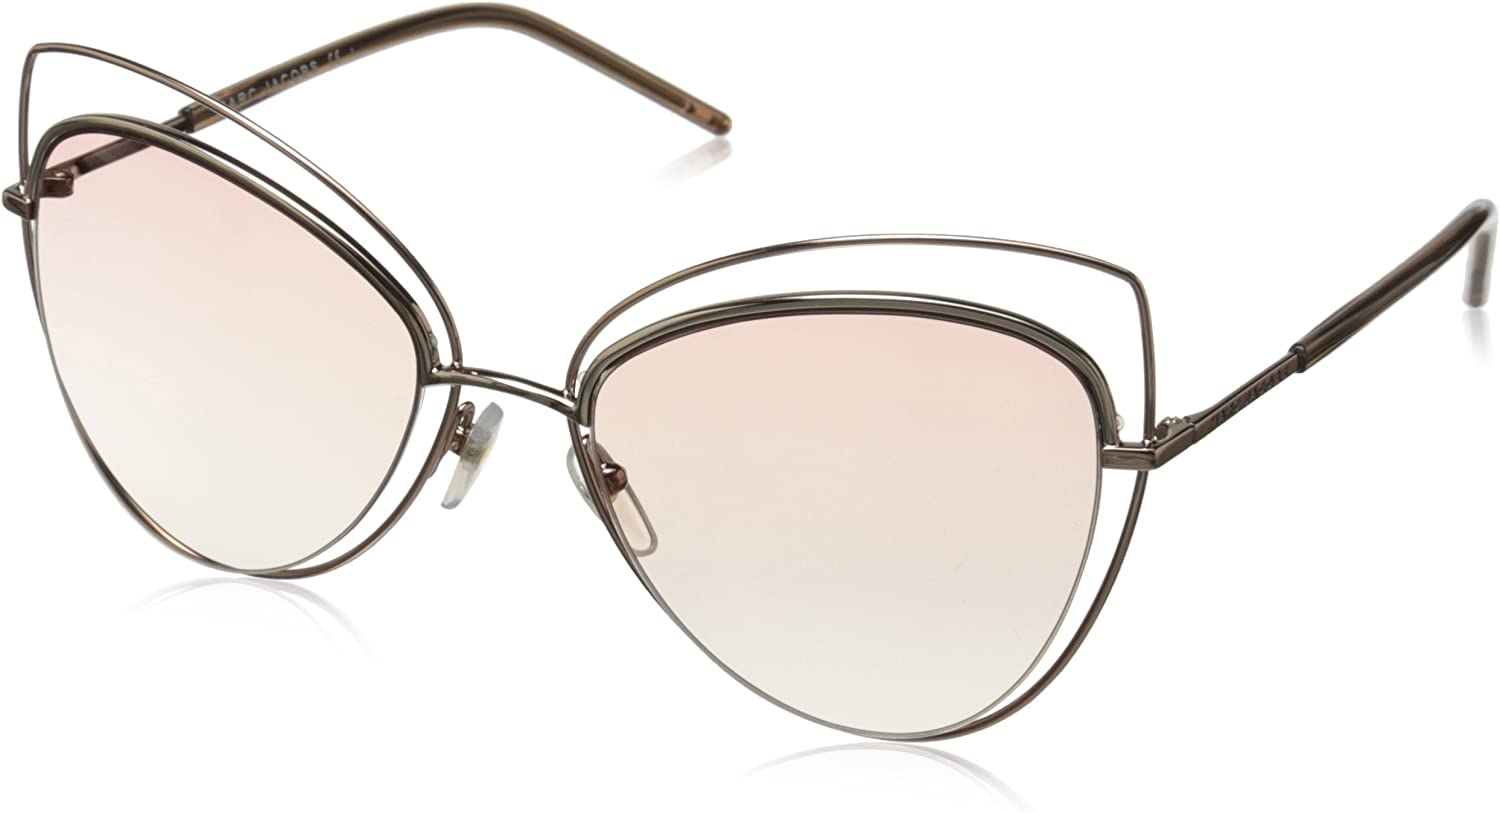 Marc by Marc Jacobs Womens MARC8S Cateye Sunglasses